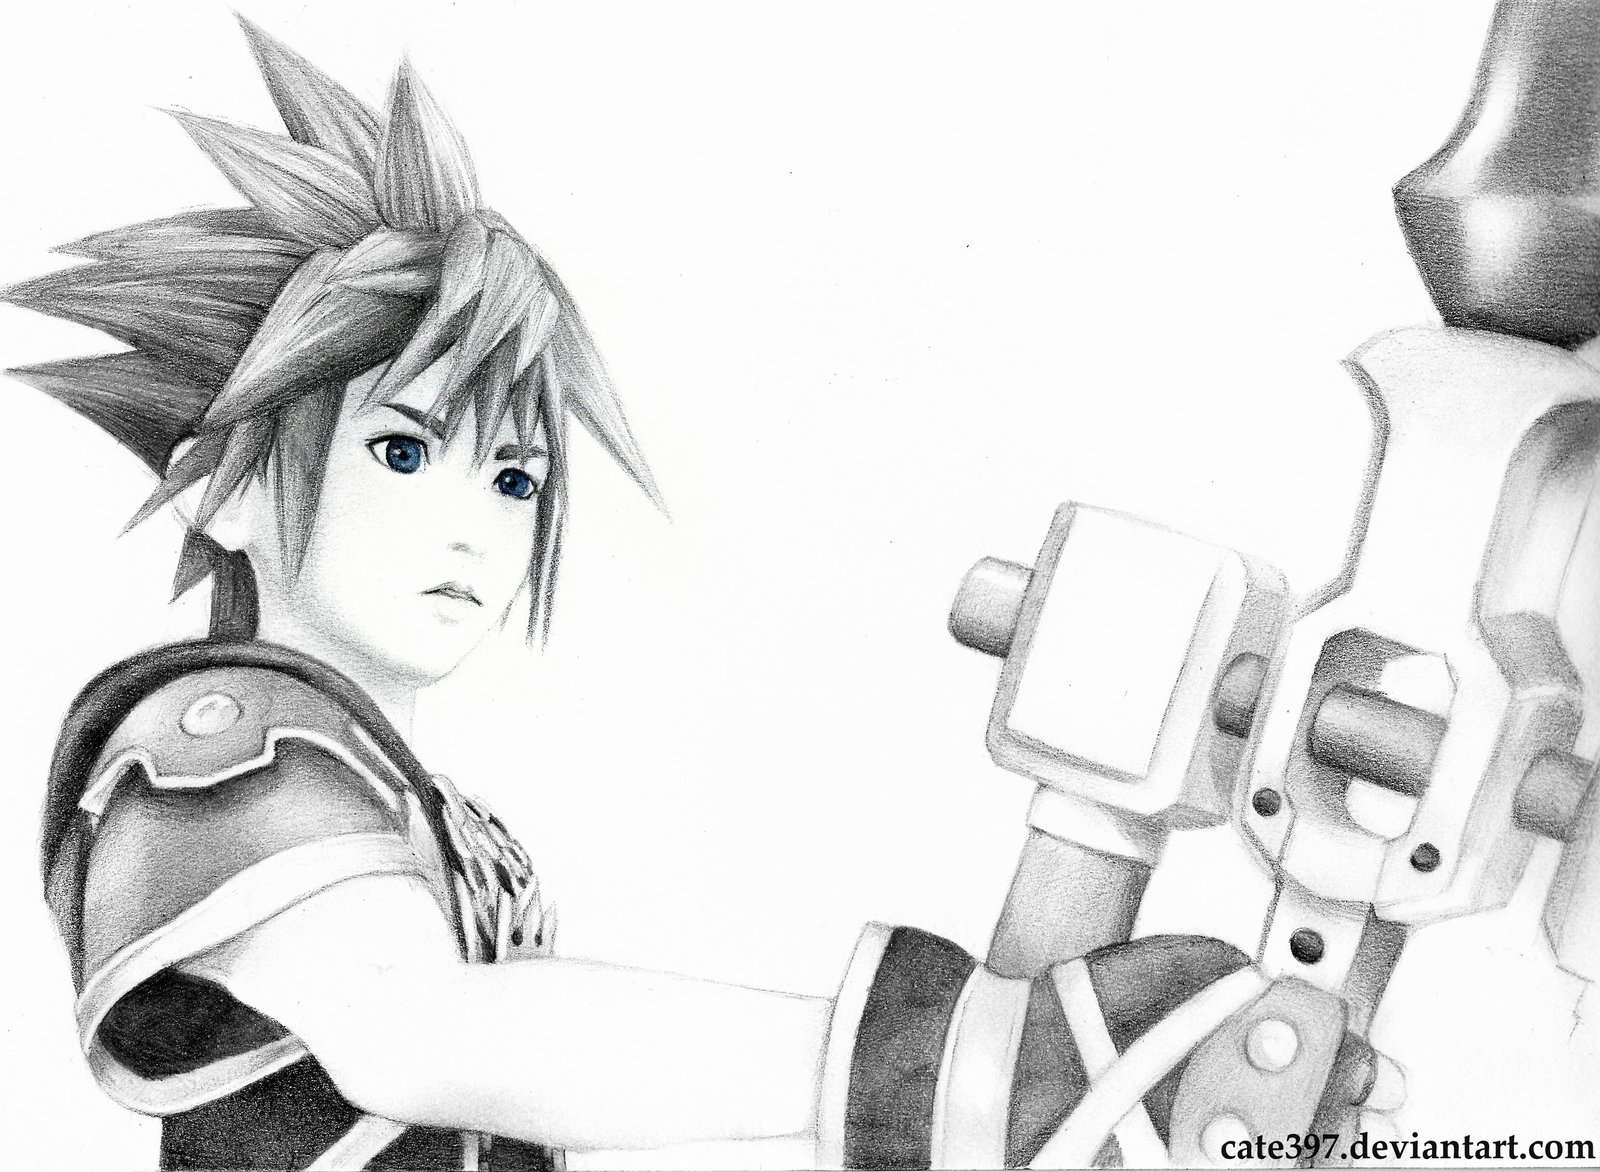 581 Images About Kingdom Hearts On We Heart It See More About